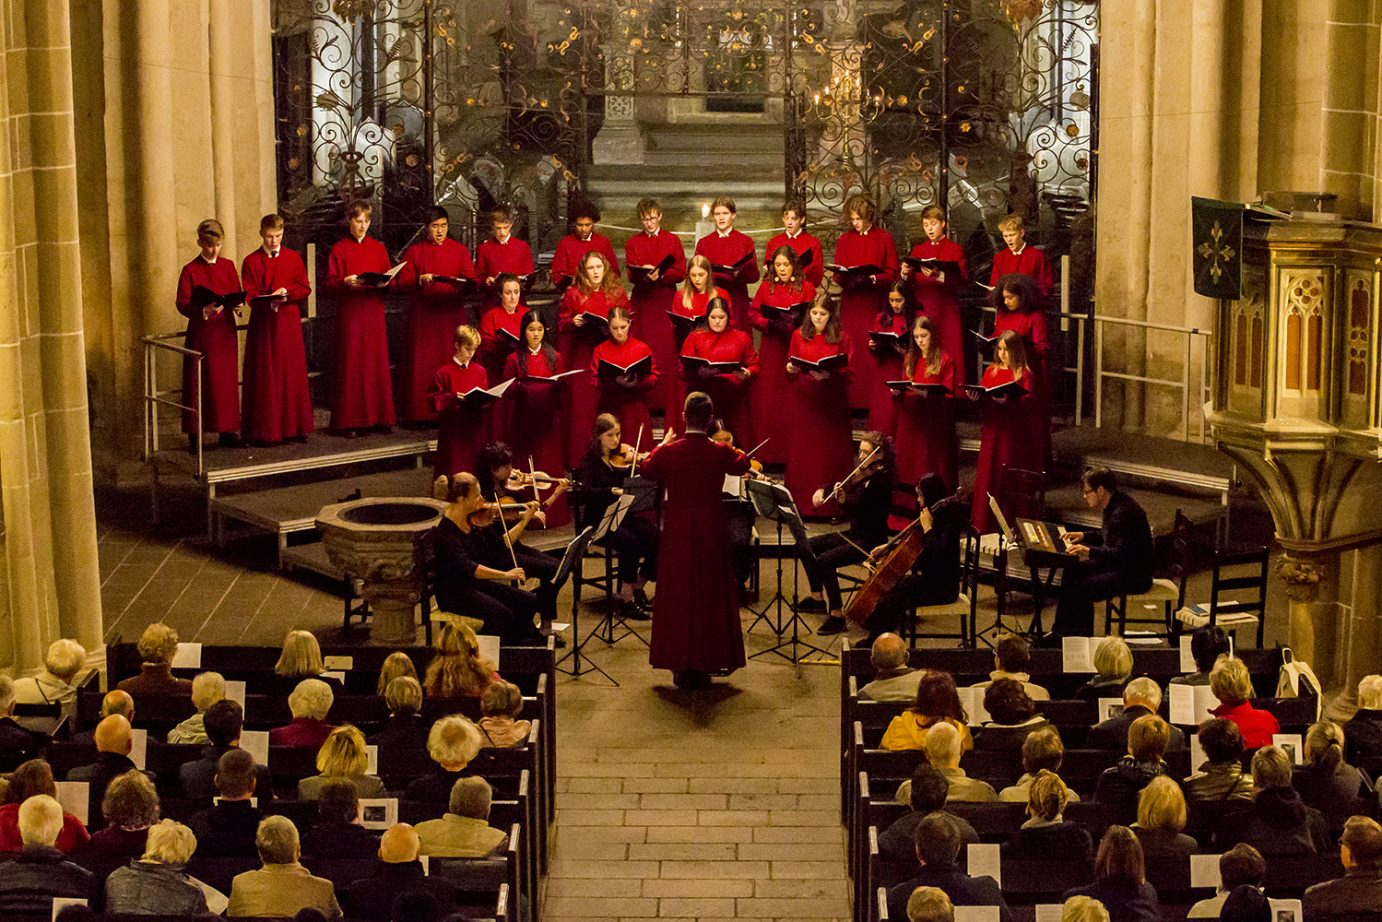 Choir in red cassocks performing with string ensemble to full church